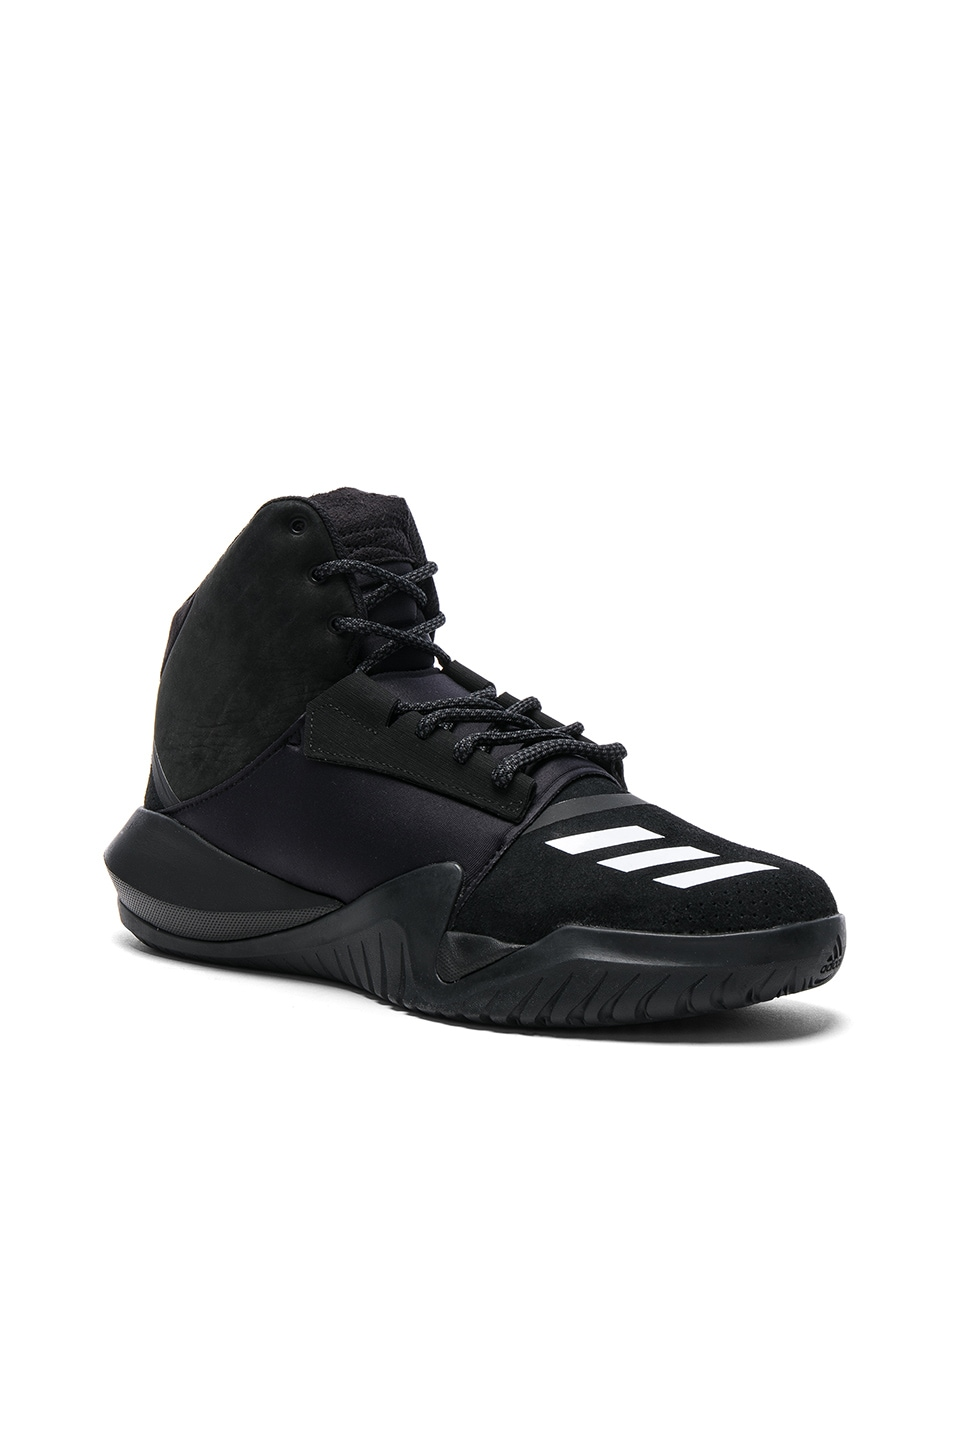 online store 71eda 1ef86 Image 1 of adidas Day One Ado Crazy Team in Black